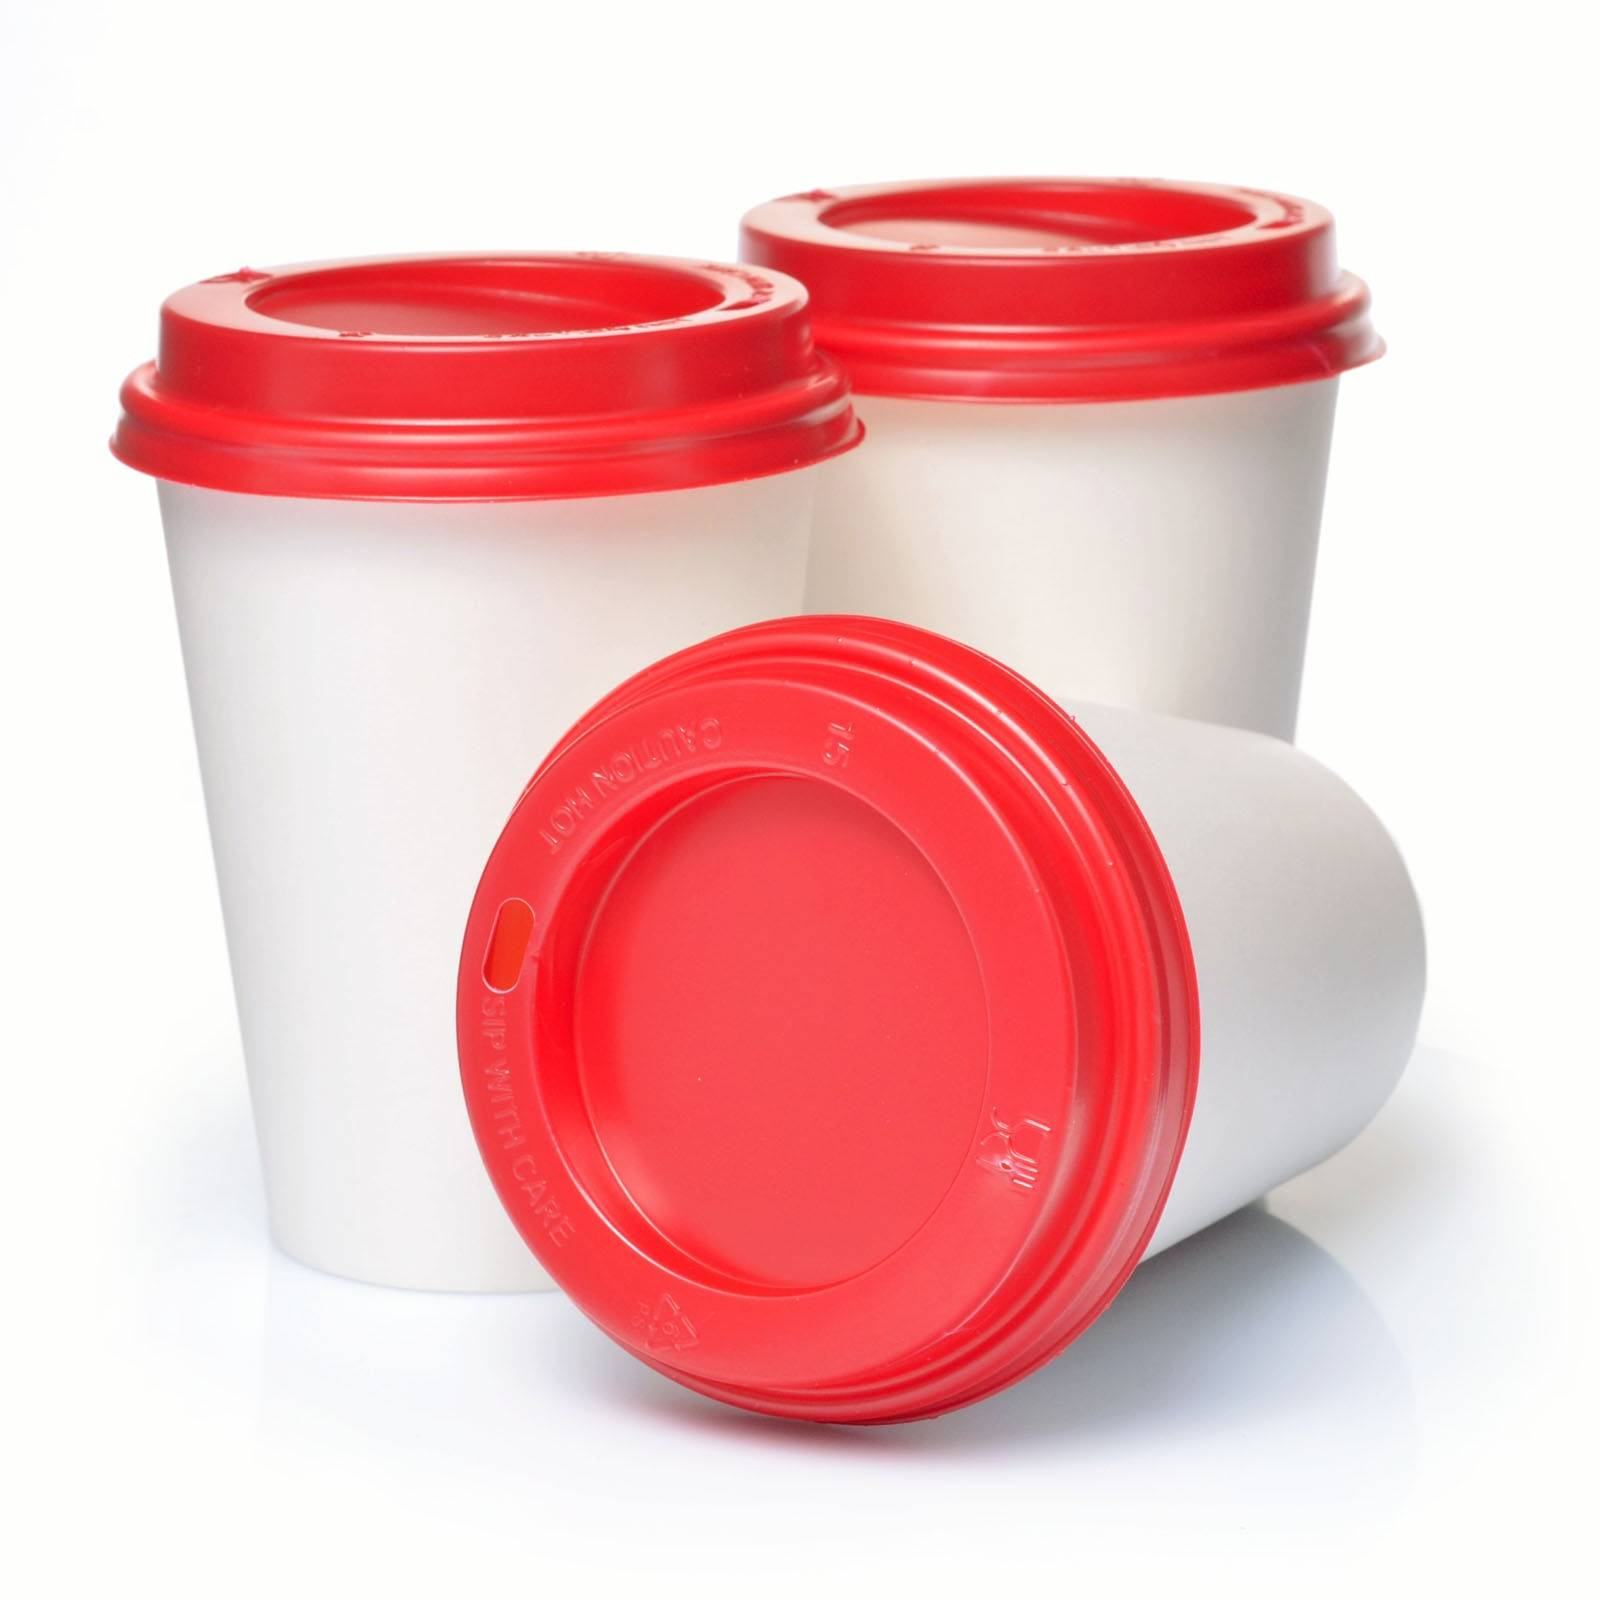 coffee to go becher pappbecher 200 x 0 3l mit deckel rot 300ml weihnachtsbecher ebay. Black Bedroom Furniture Sets. Home Design Ideas